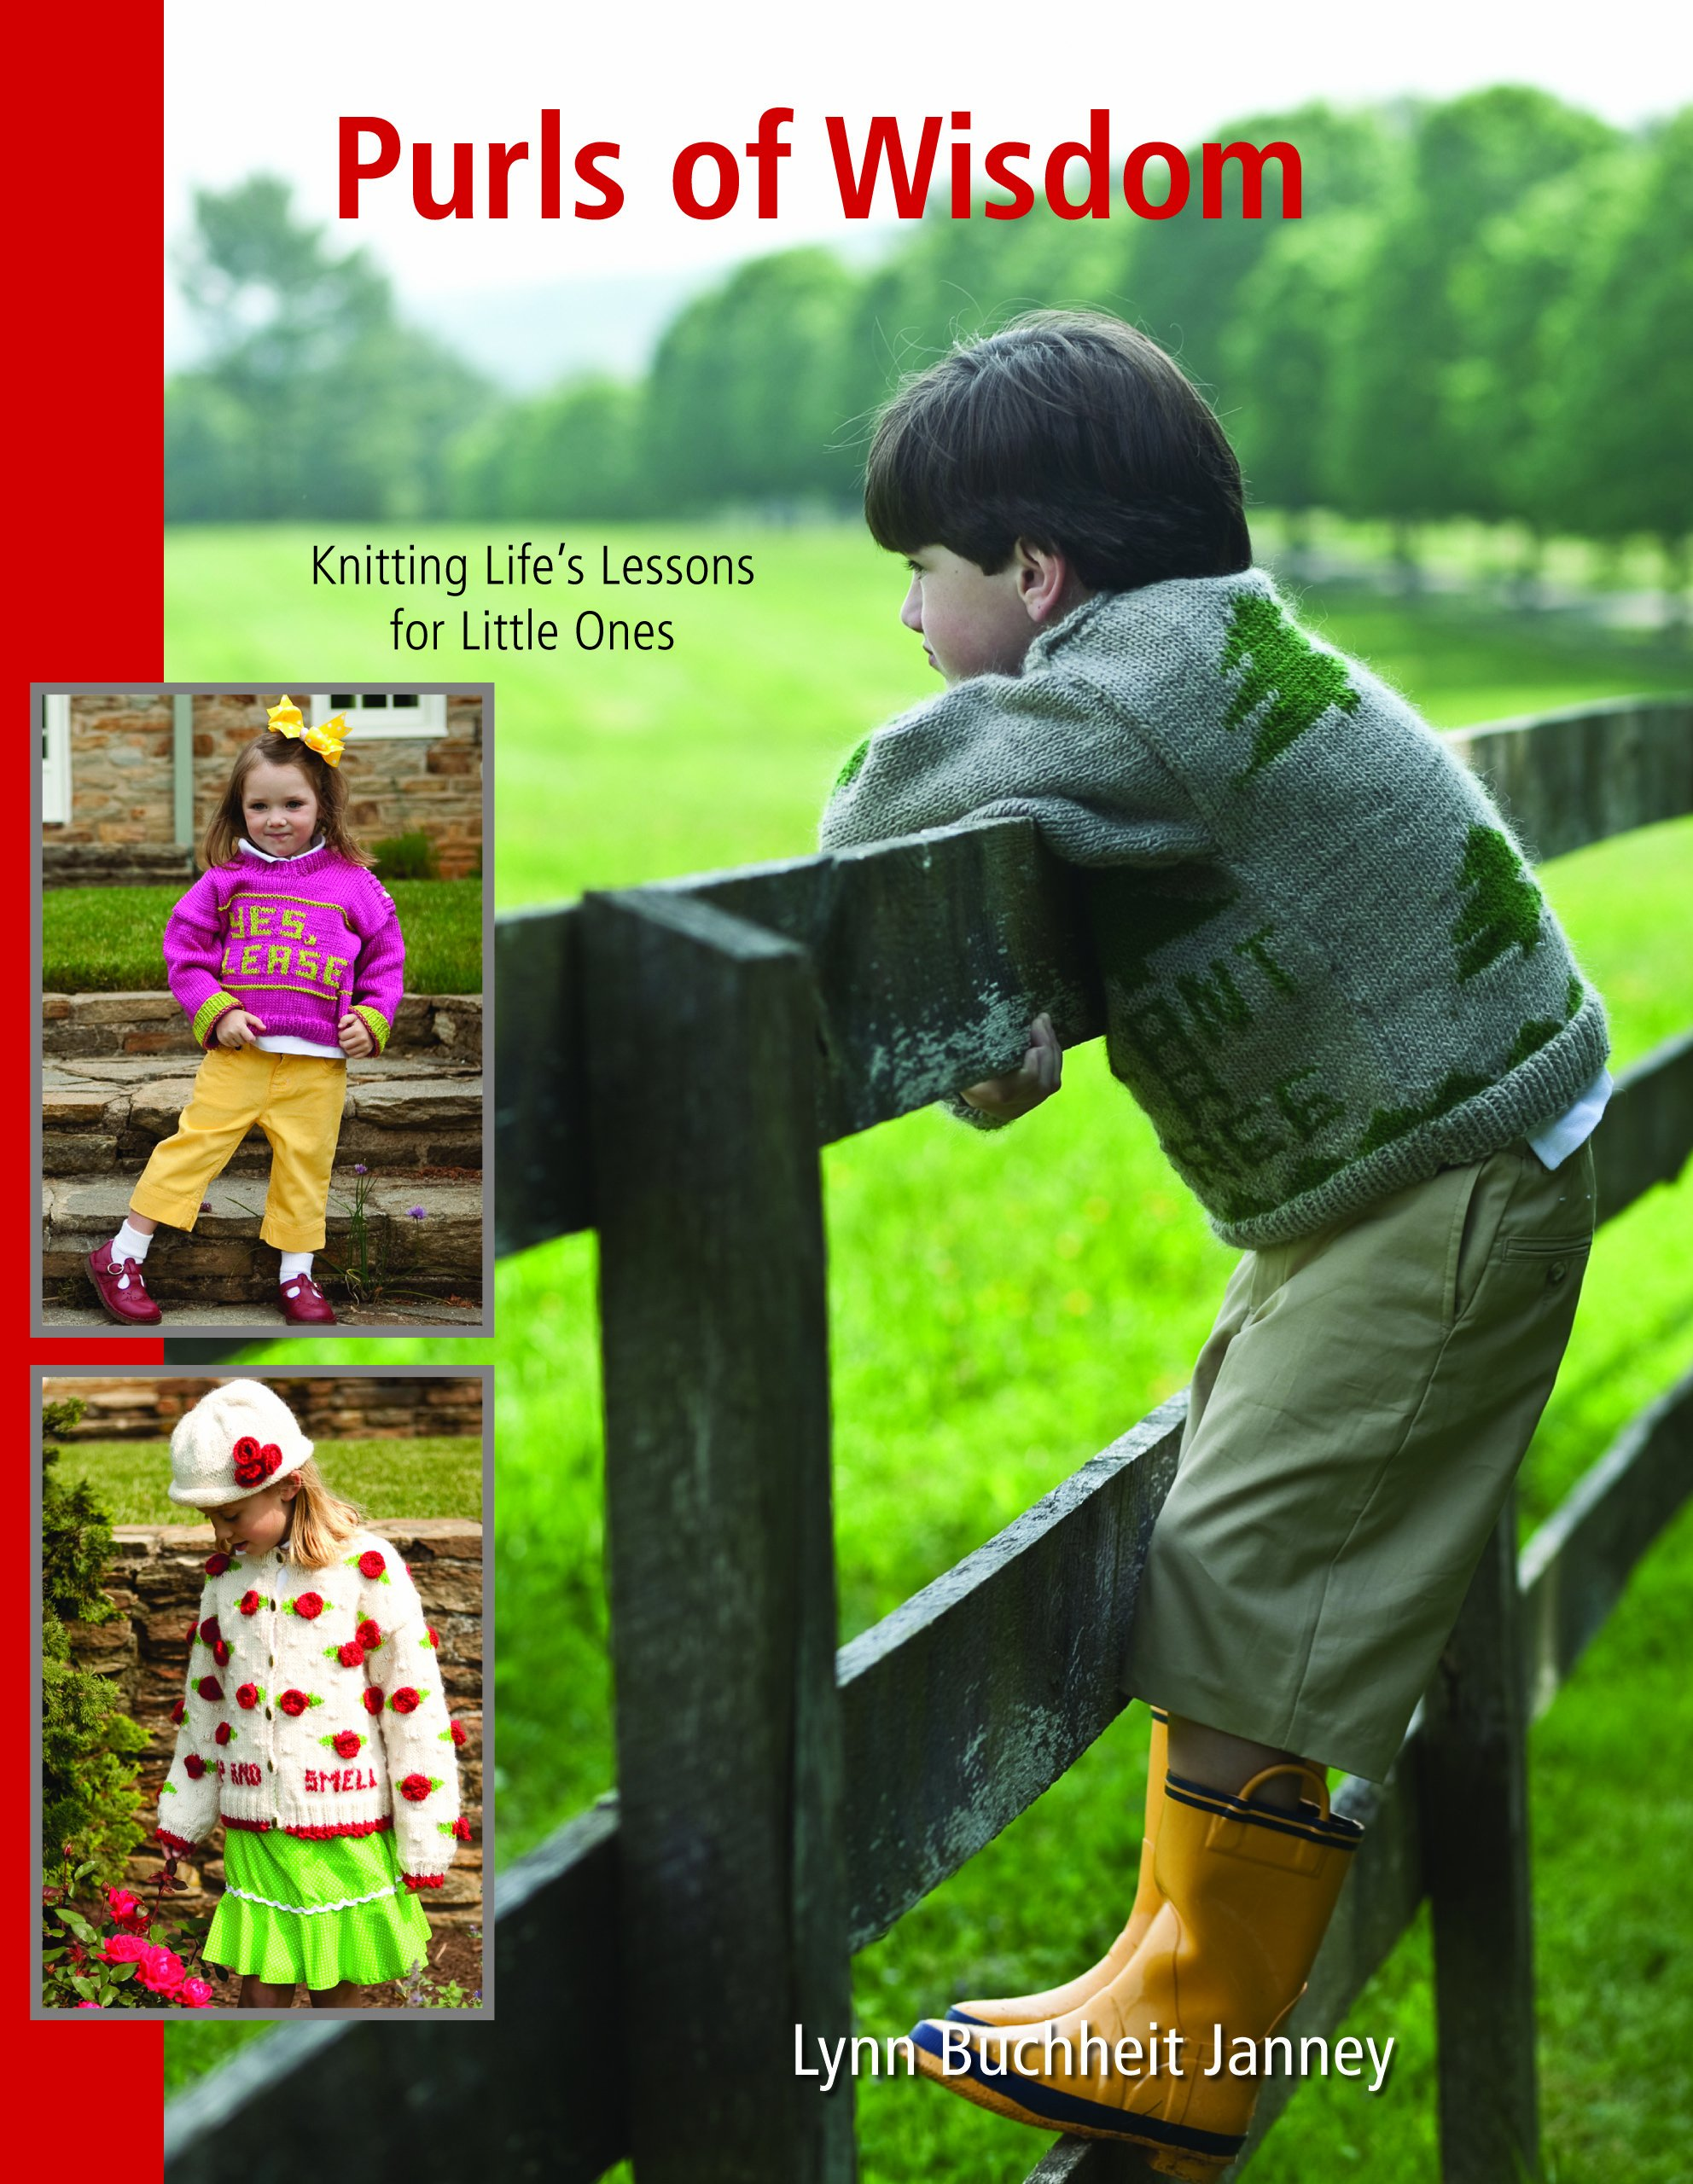 Purls of Wisdom: Knitting Life's Lessons for Little Ones